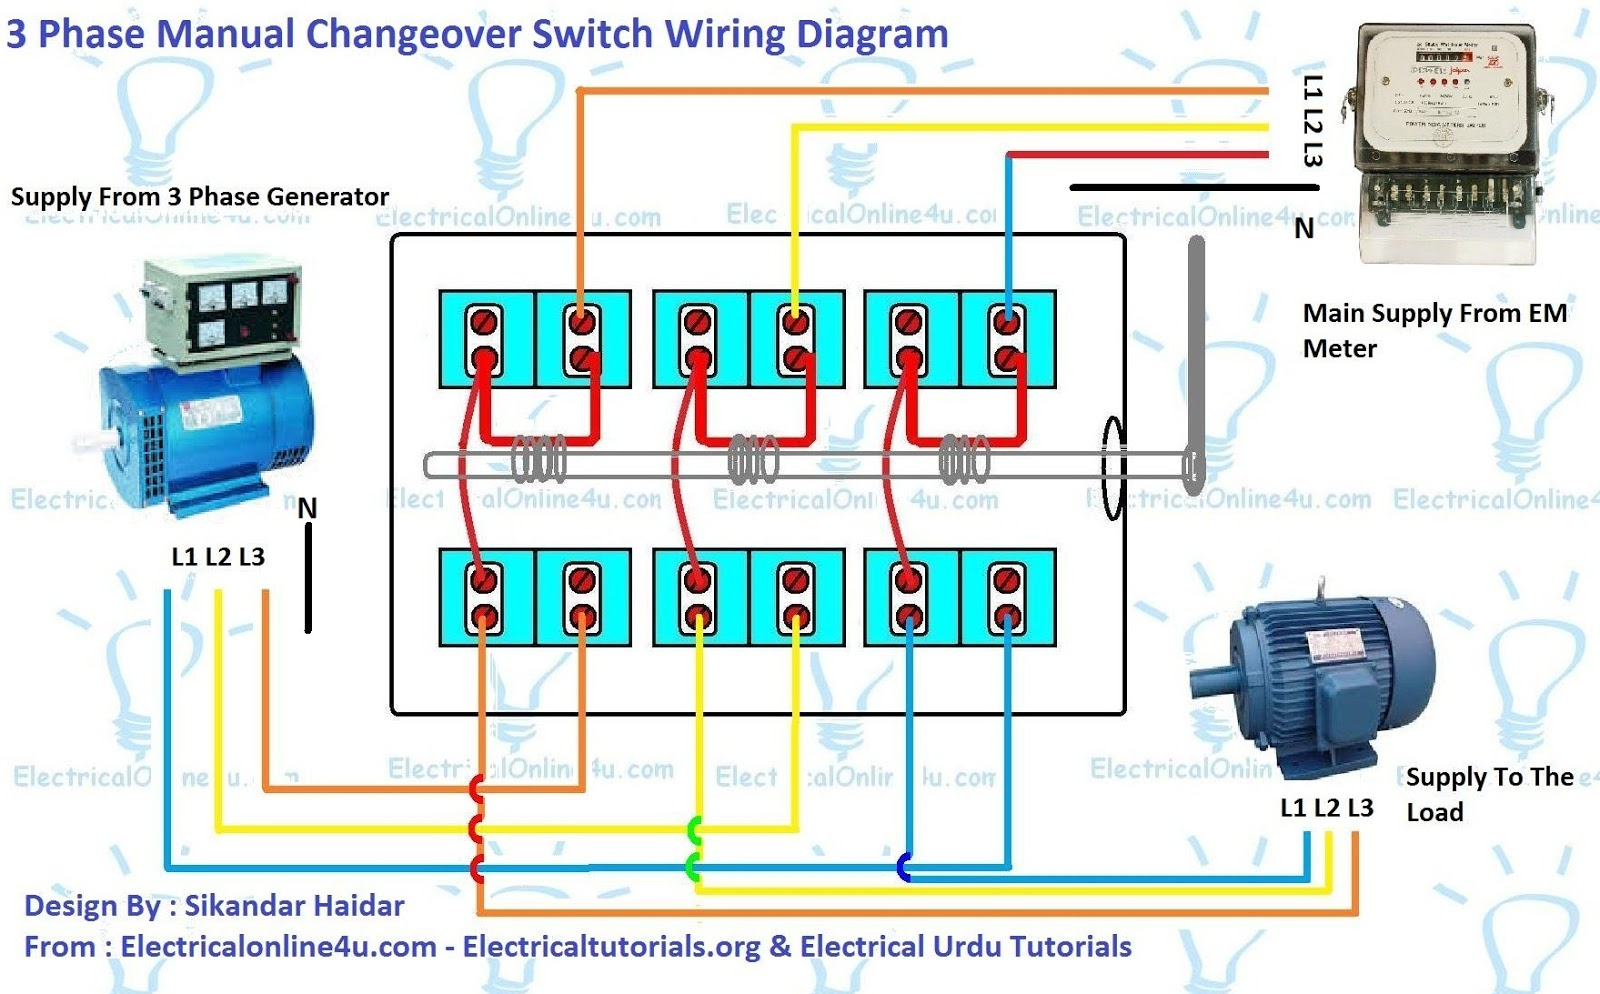 3%2Bphase%2Bmanual%2Bchangeover%2Bswitch%2Bwiring%2Bdiagram 3 phase manual changeover switch wiring diagram for generator manual changeover switch wiring diagram at gsmx.co